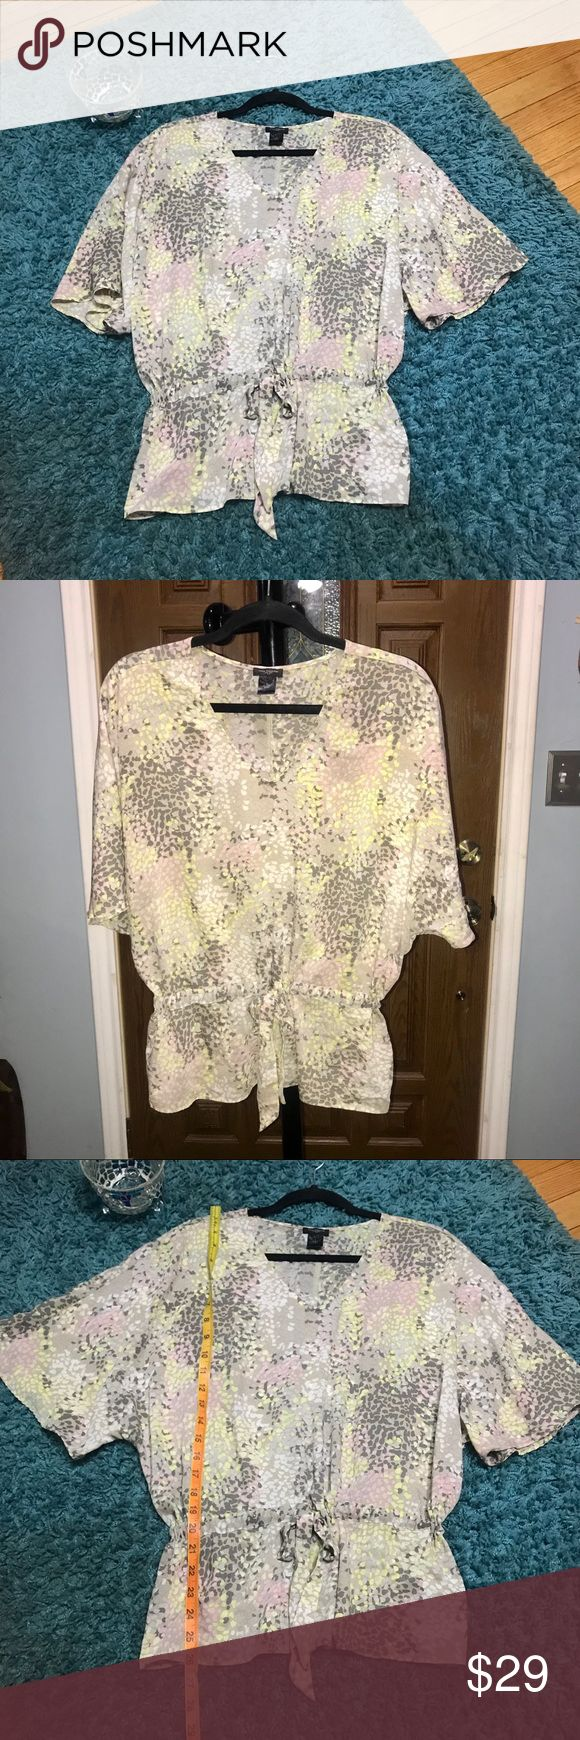 ANN TAYLOR Silky Pebble Print Dolman Sleeve Blouse FEATURES •Ann Taylor Blouse •Sz Small  •Color: Cream, Yellow, pink, Gray, white  •100% Polyester  •Machine washable  •Pebble Print  •Dolman Sleeve  •Adjustable Bow on the front •Loose fit •Elastic Waist to define it. Ann Taylor Tops Blouses